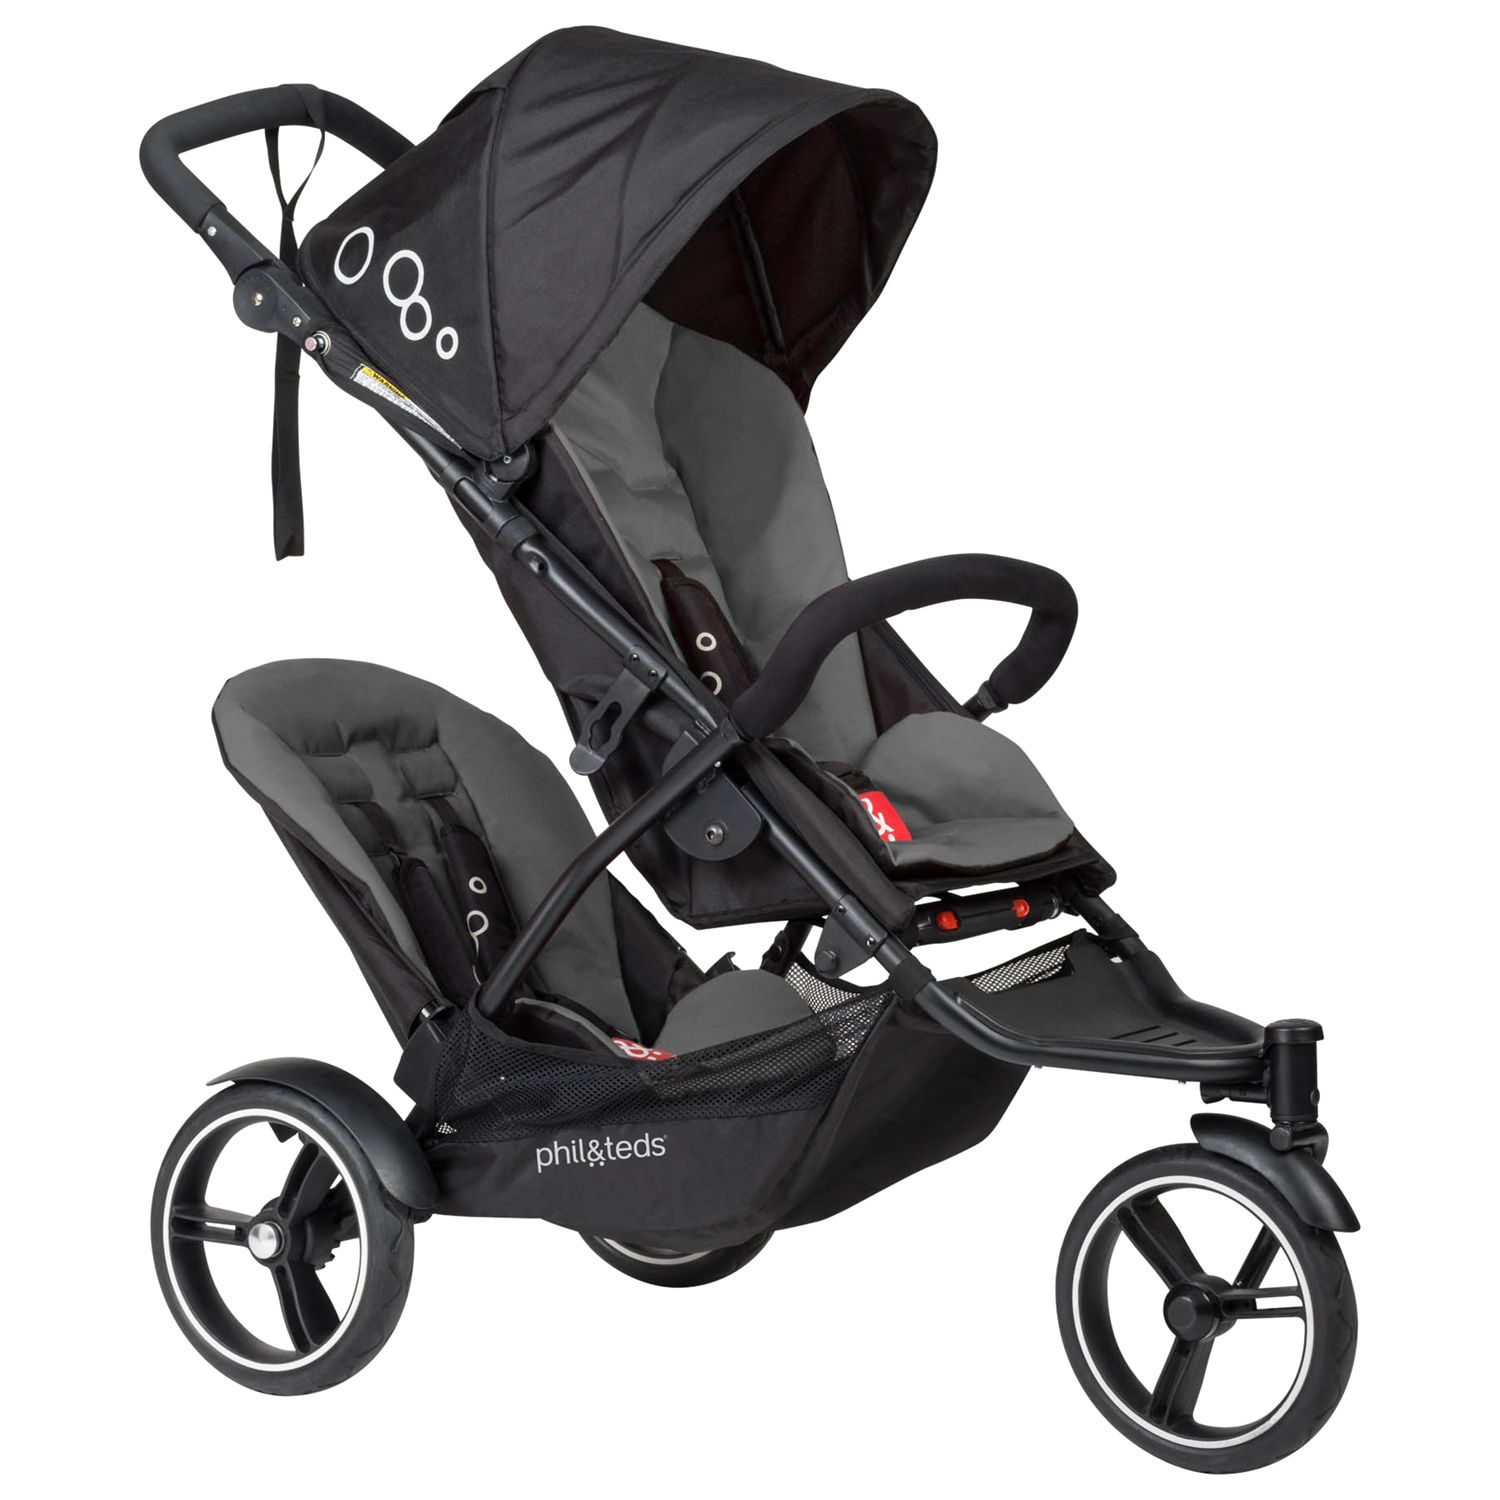 Phil & Teds Phil & Teds Dot Pushchair, Graphite